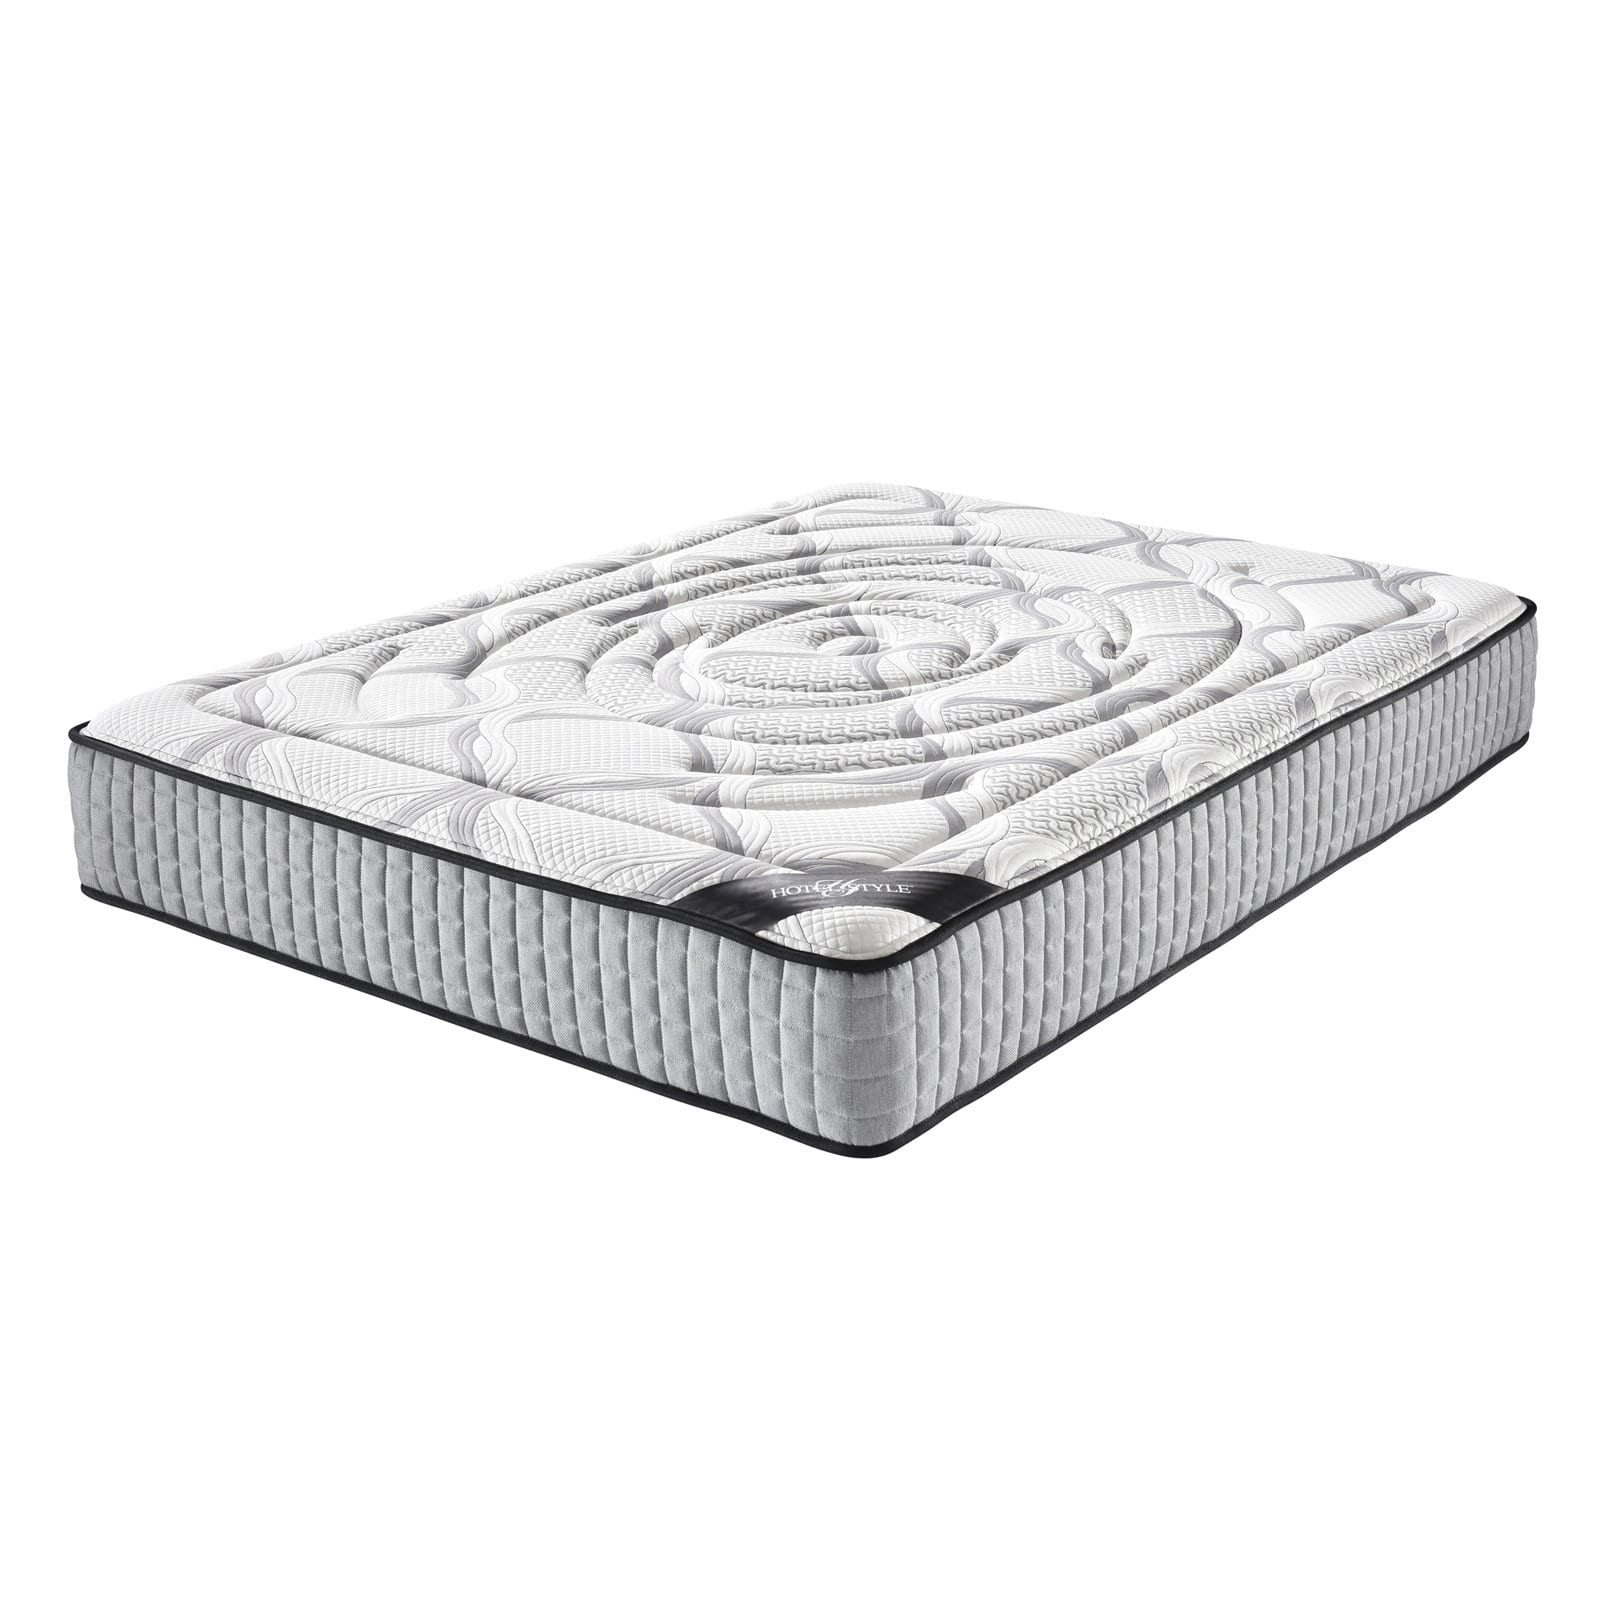 Hotel Style 10.5 in. Plush Top Memory Foam and Individually Encased Spring Mattress